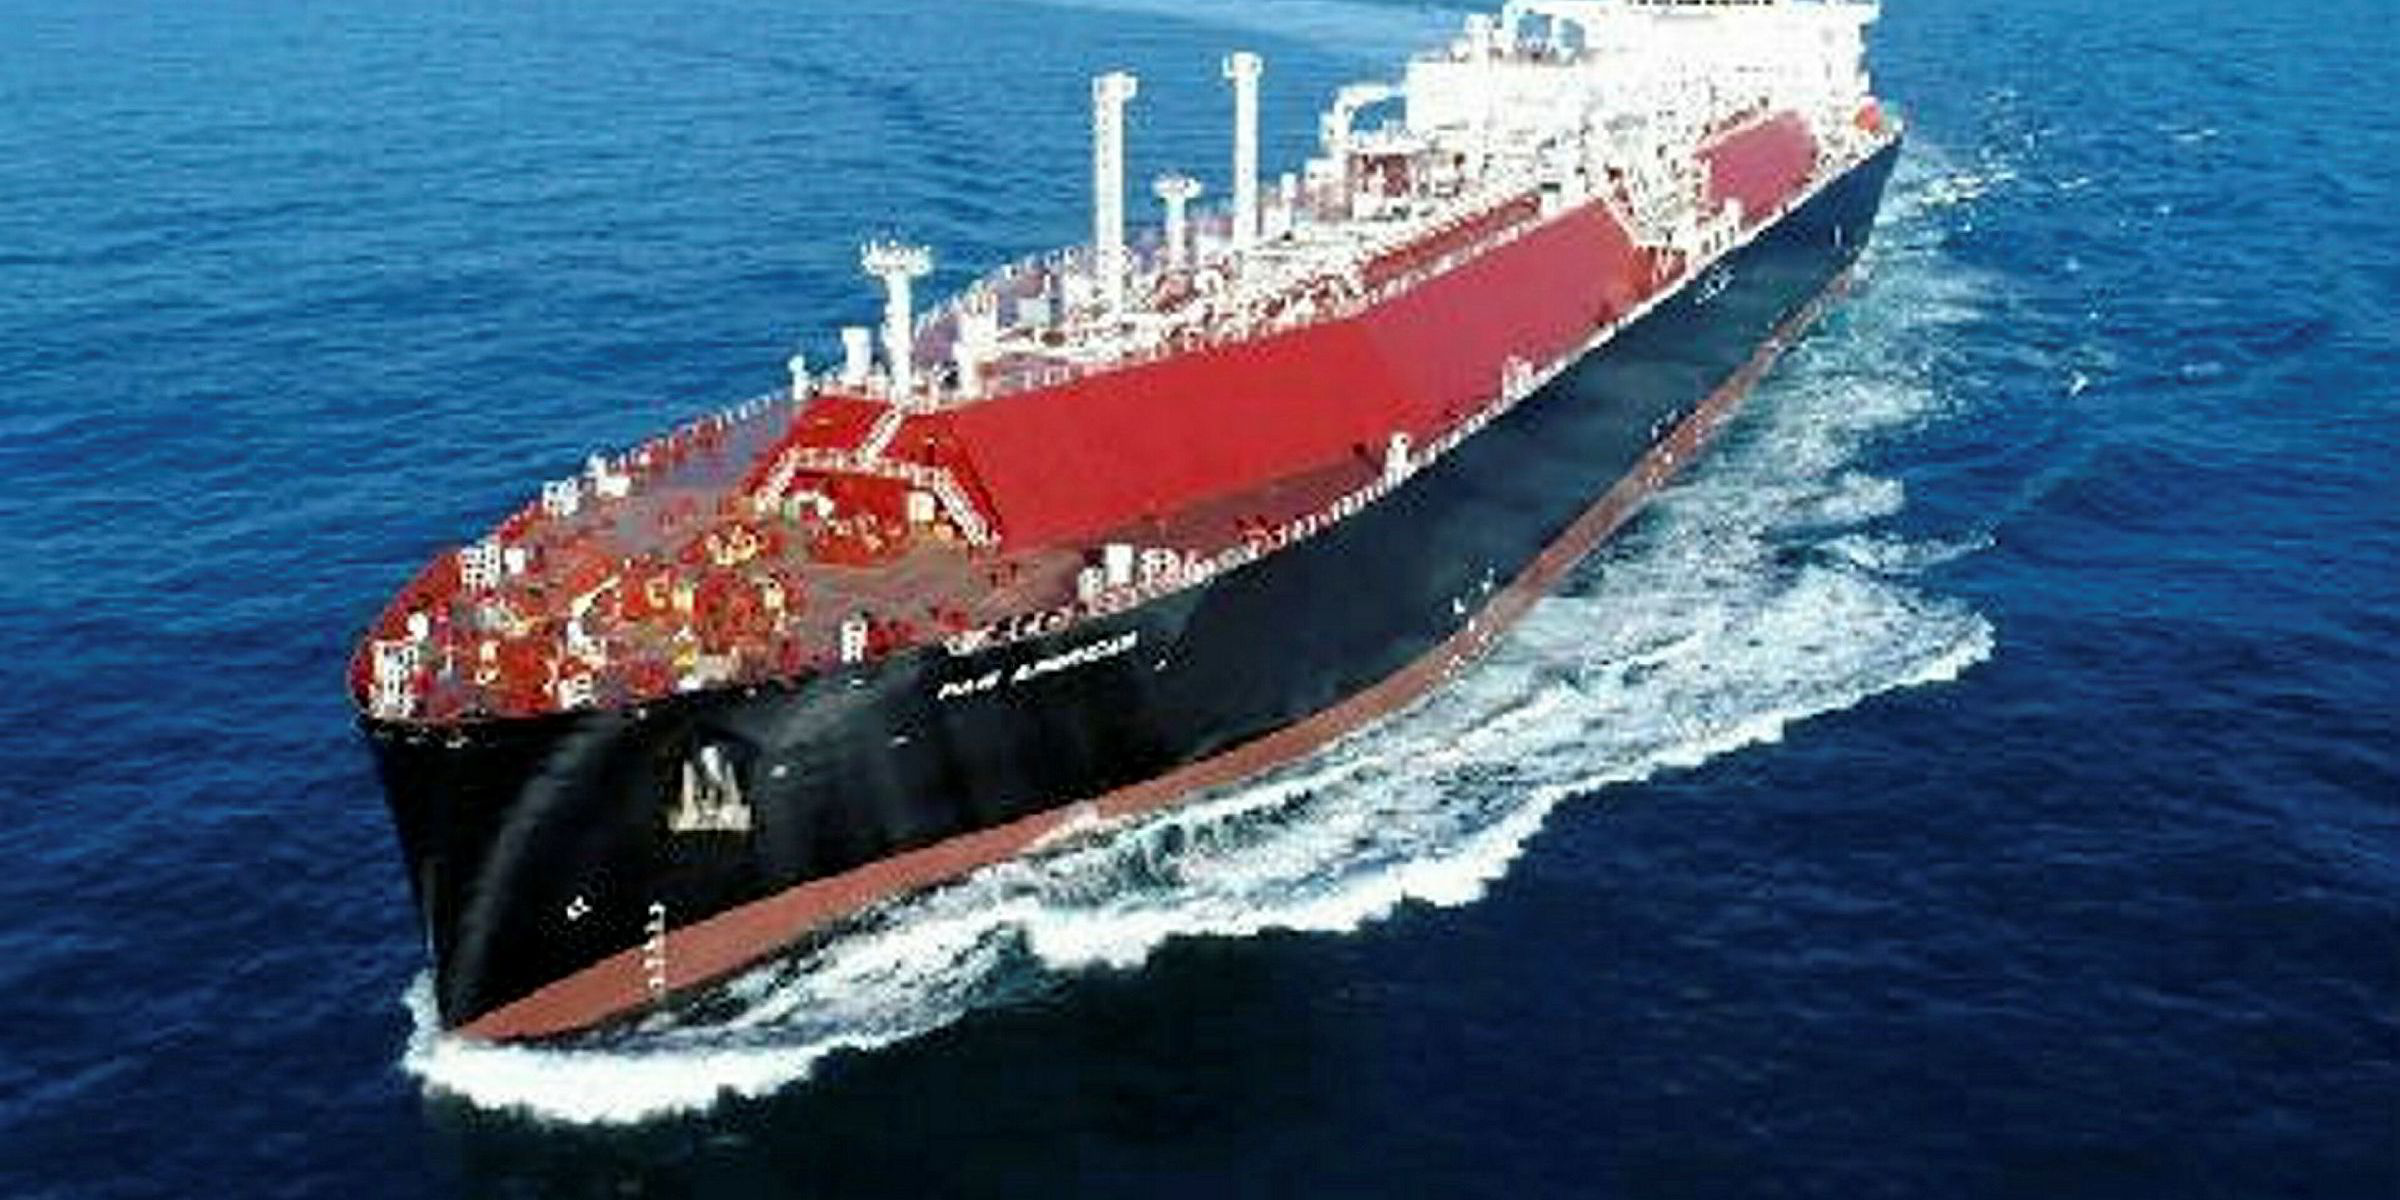 Cosco Shipping Energy eyes LNG orders | TradeWinds